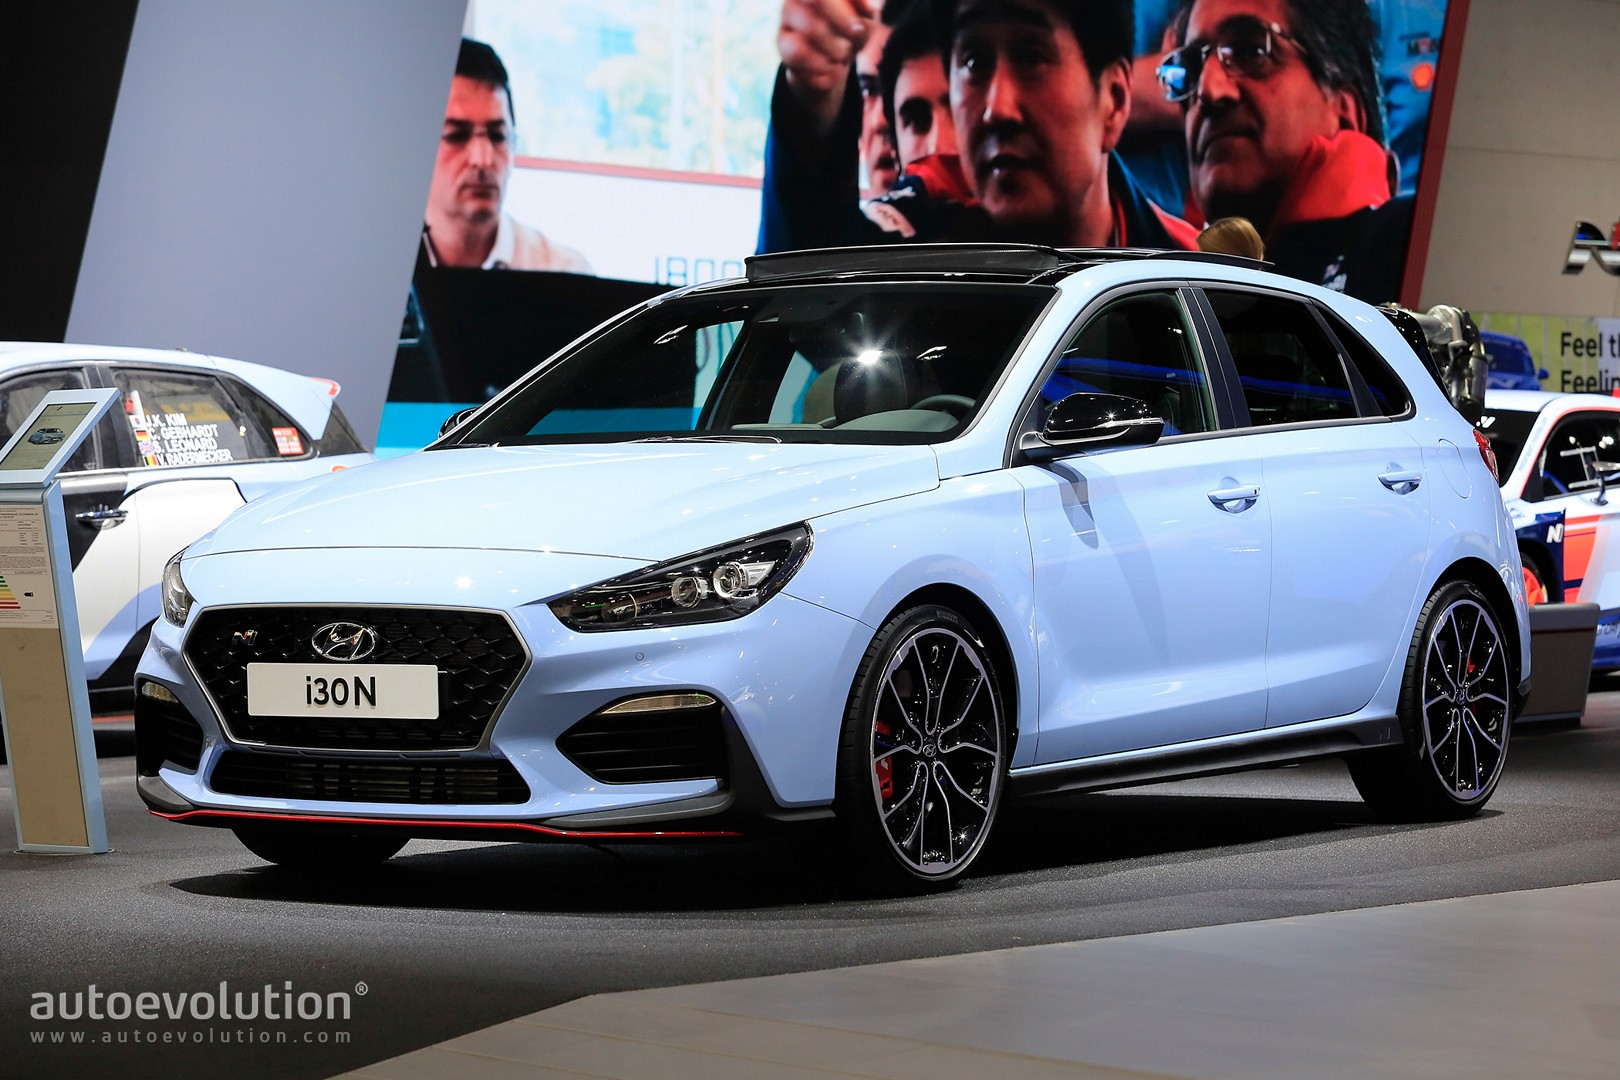 hyundai i30 n uk pricing announced a 24 995 bargain. Black Bedroom Furniture Sets. Home Design Ideas